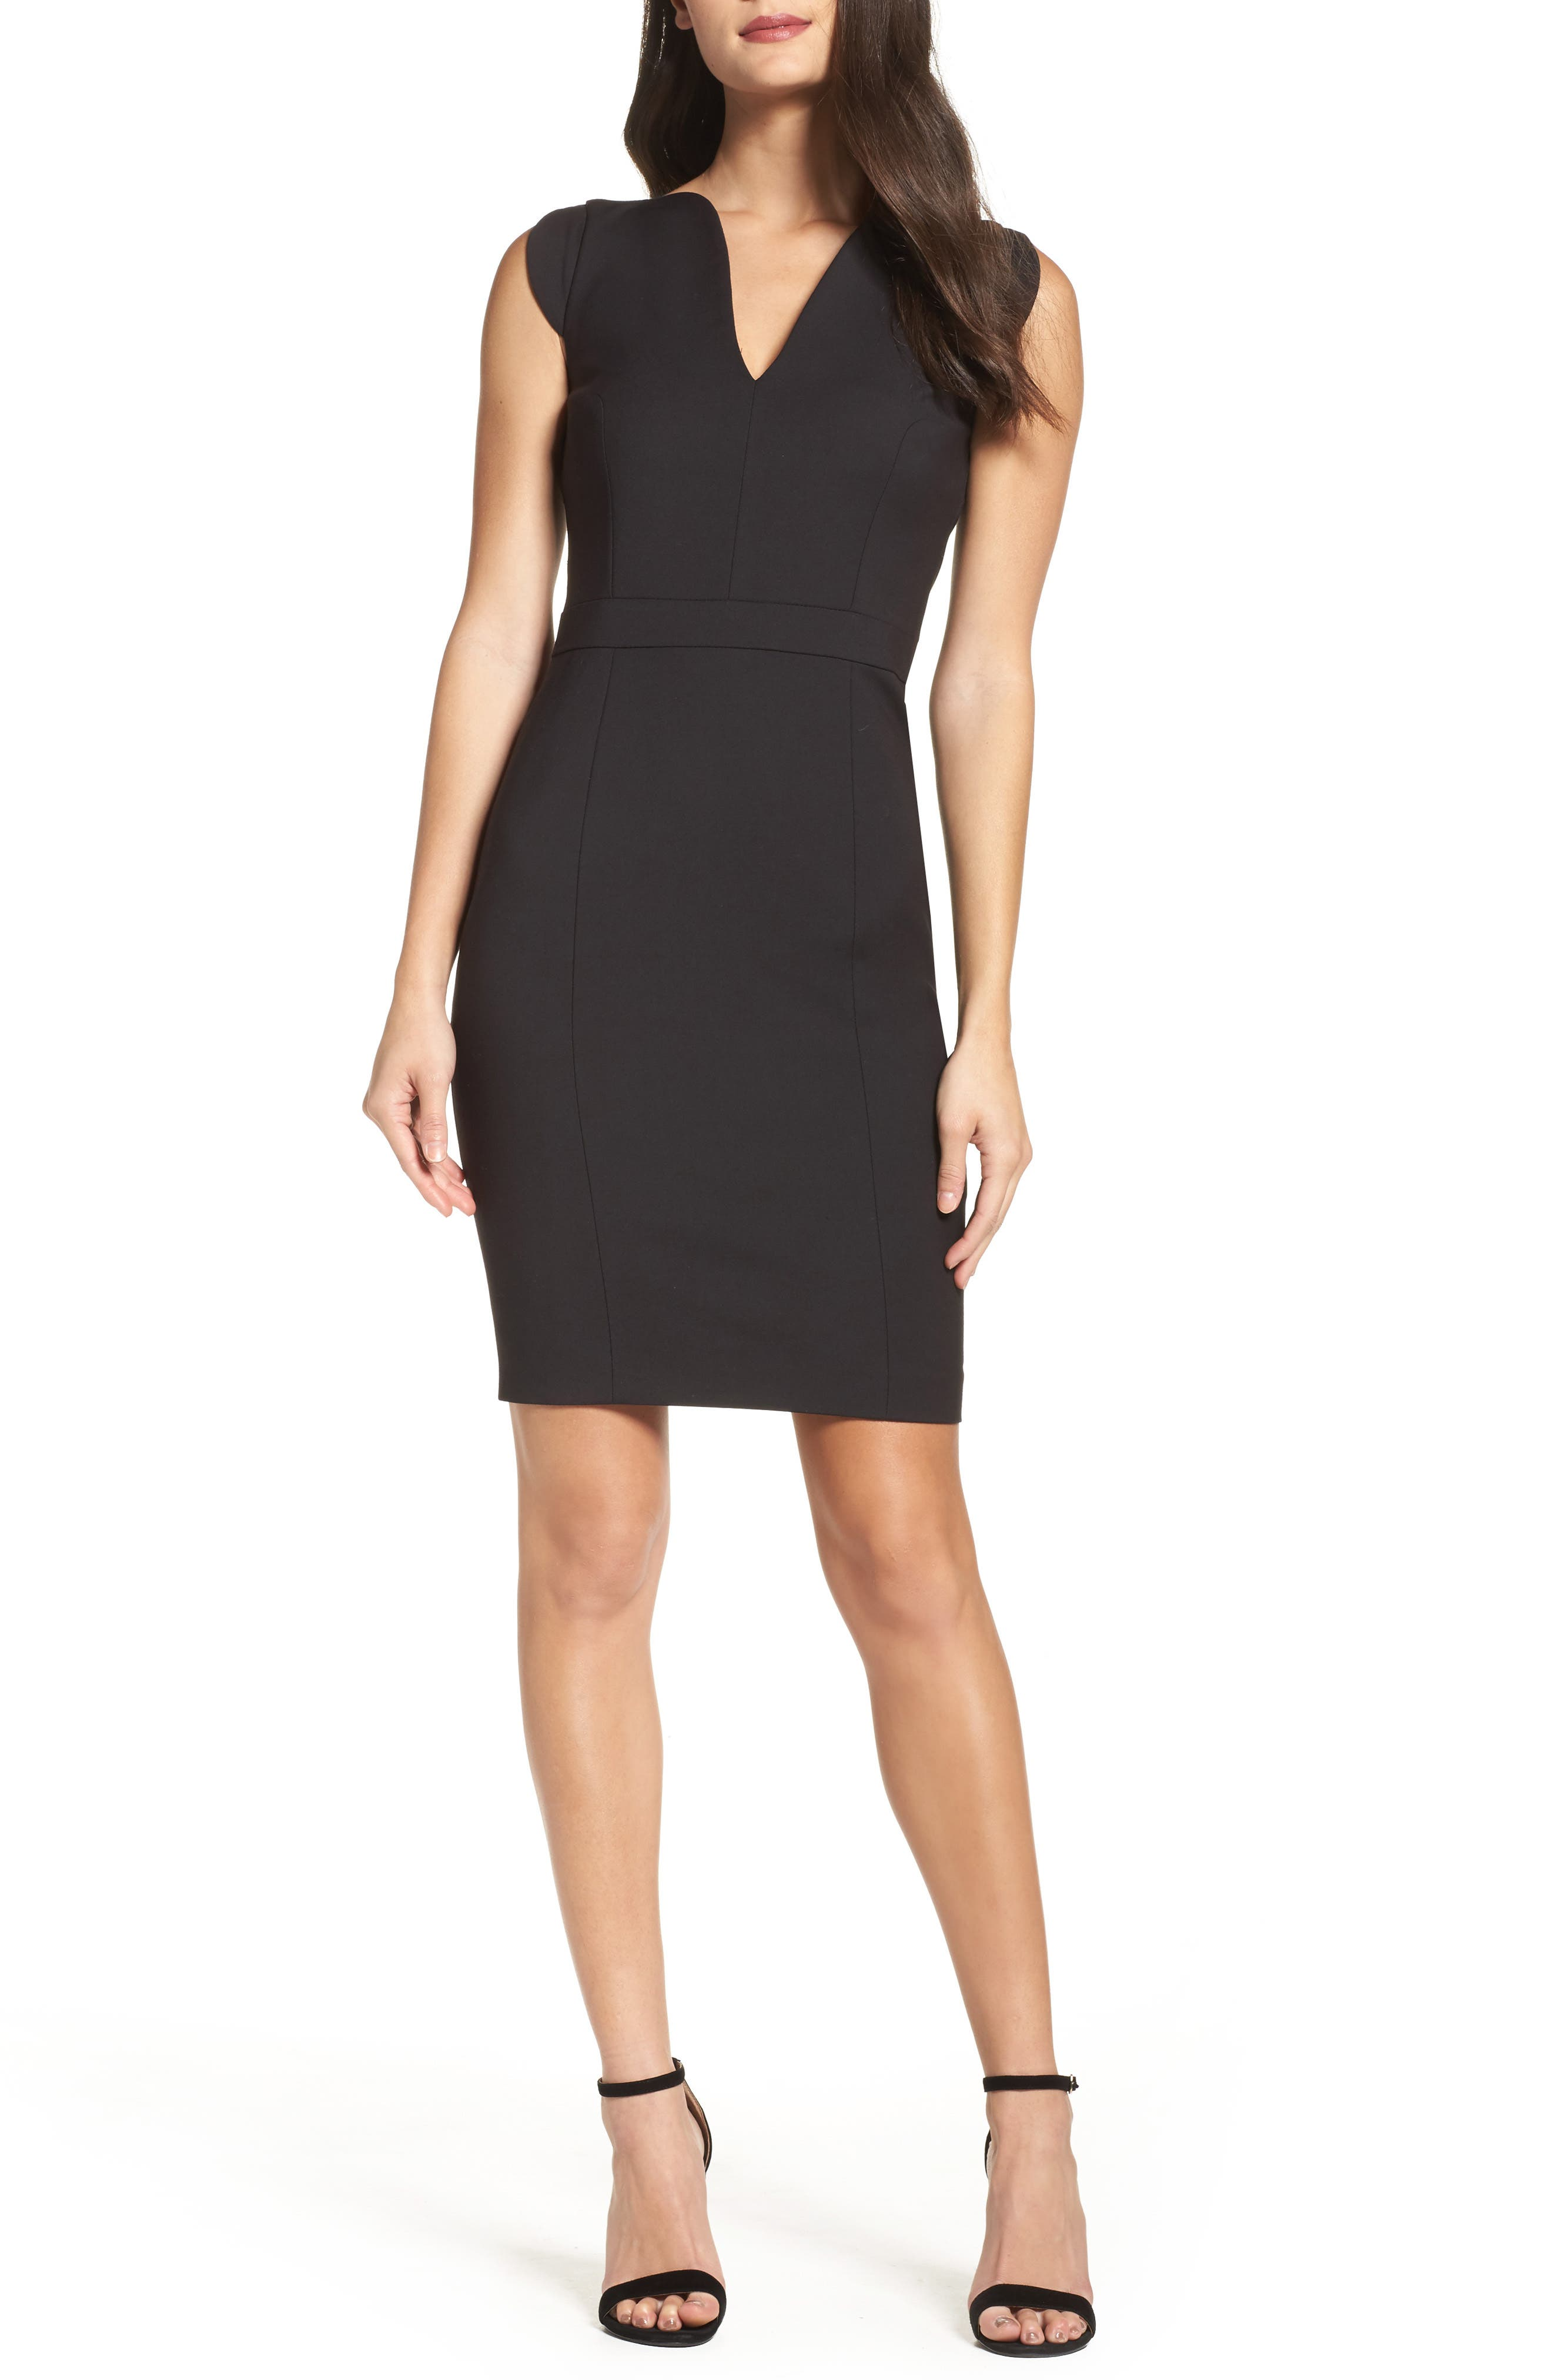 978084387c8 French Connection Dresses